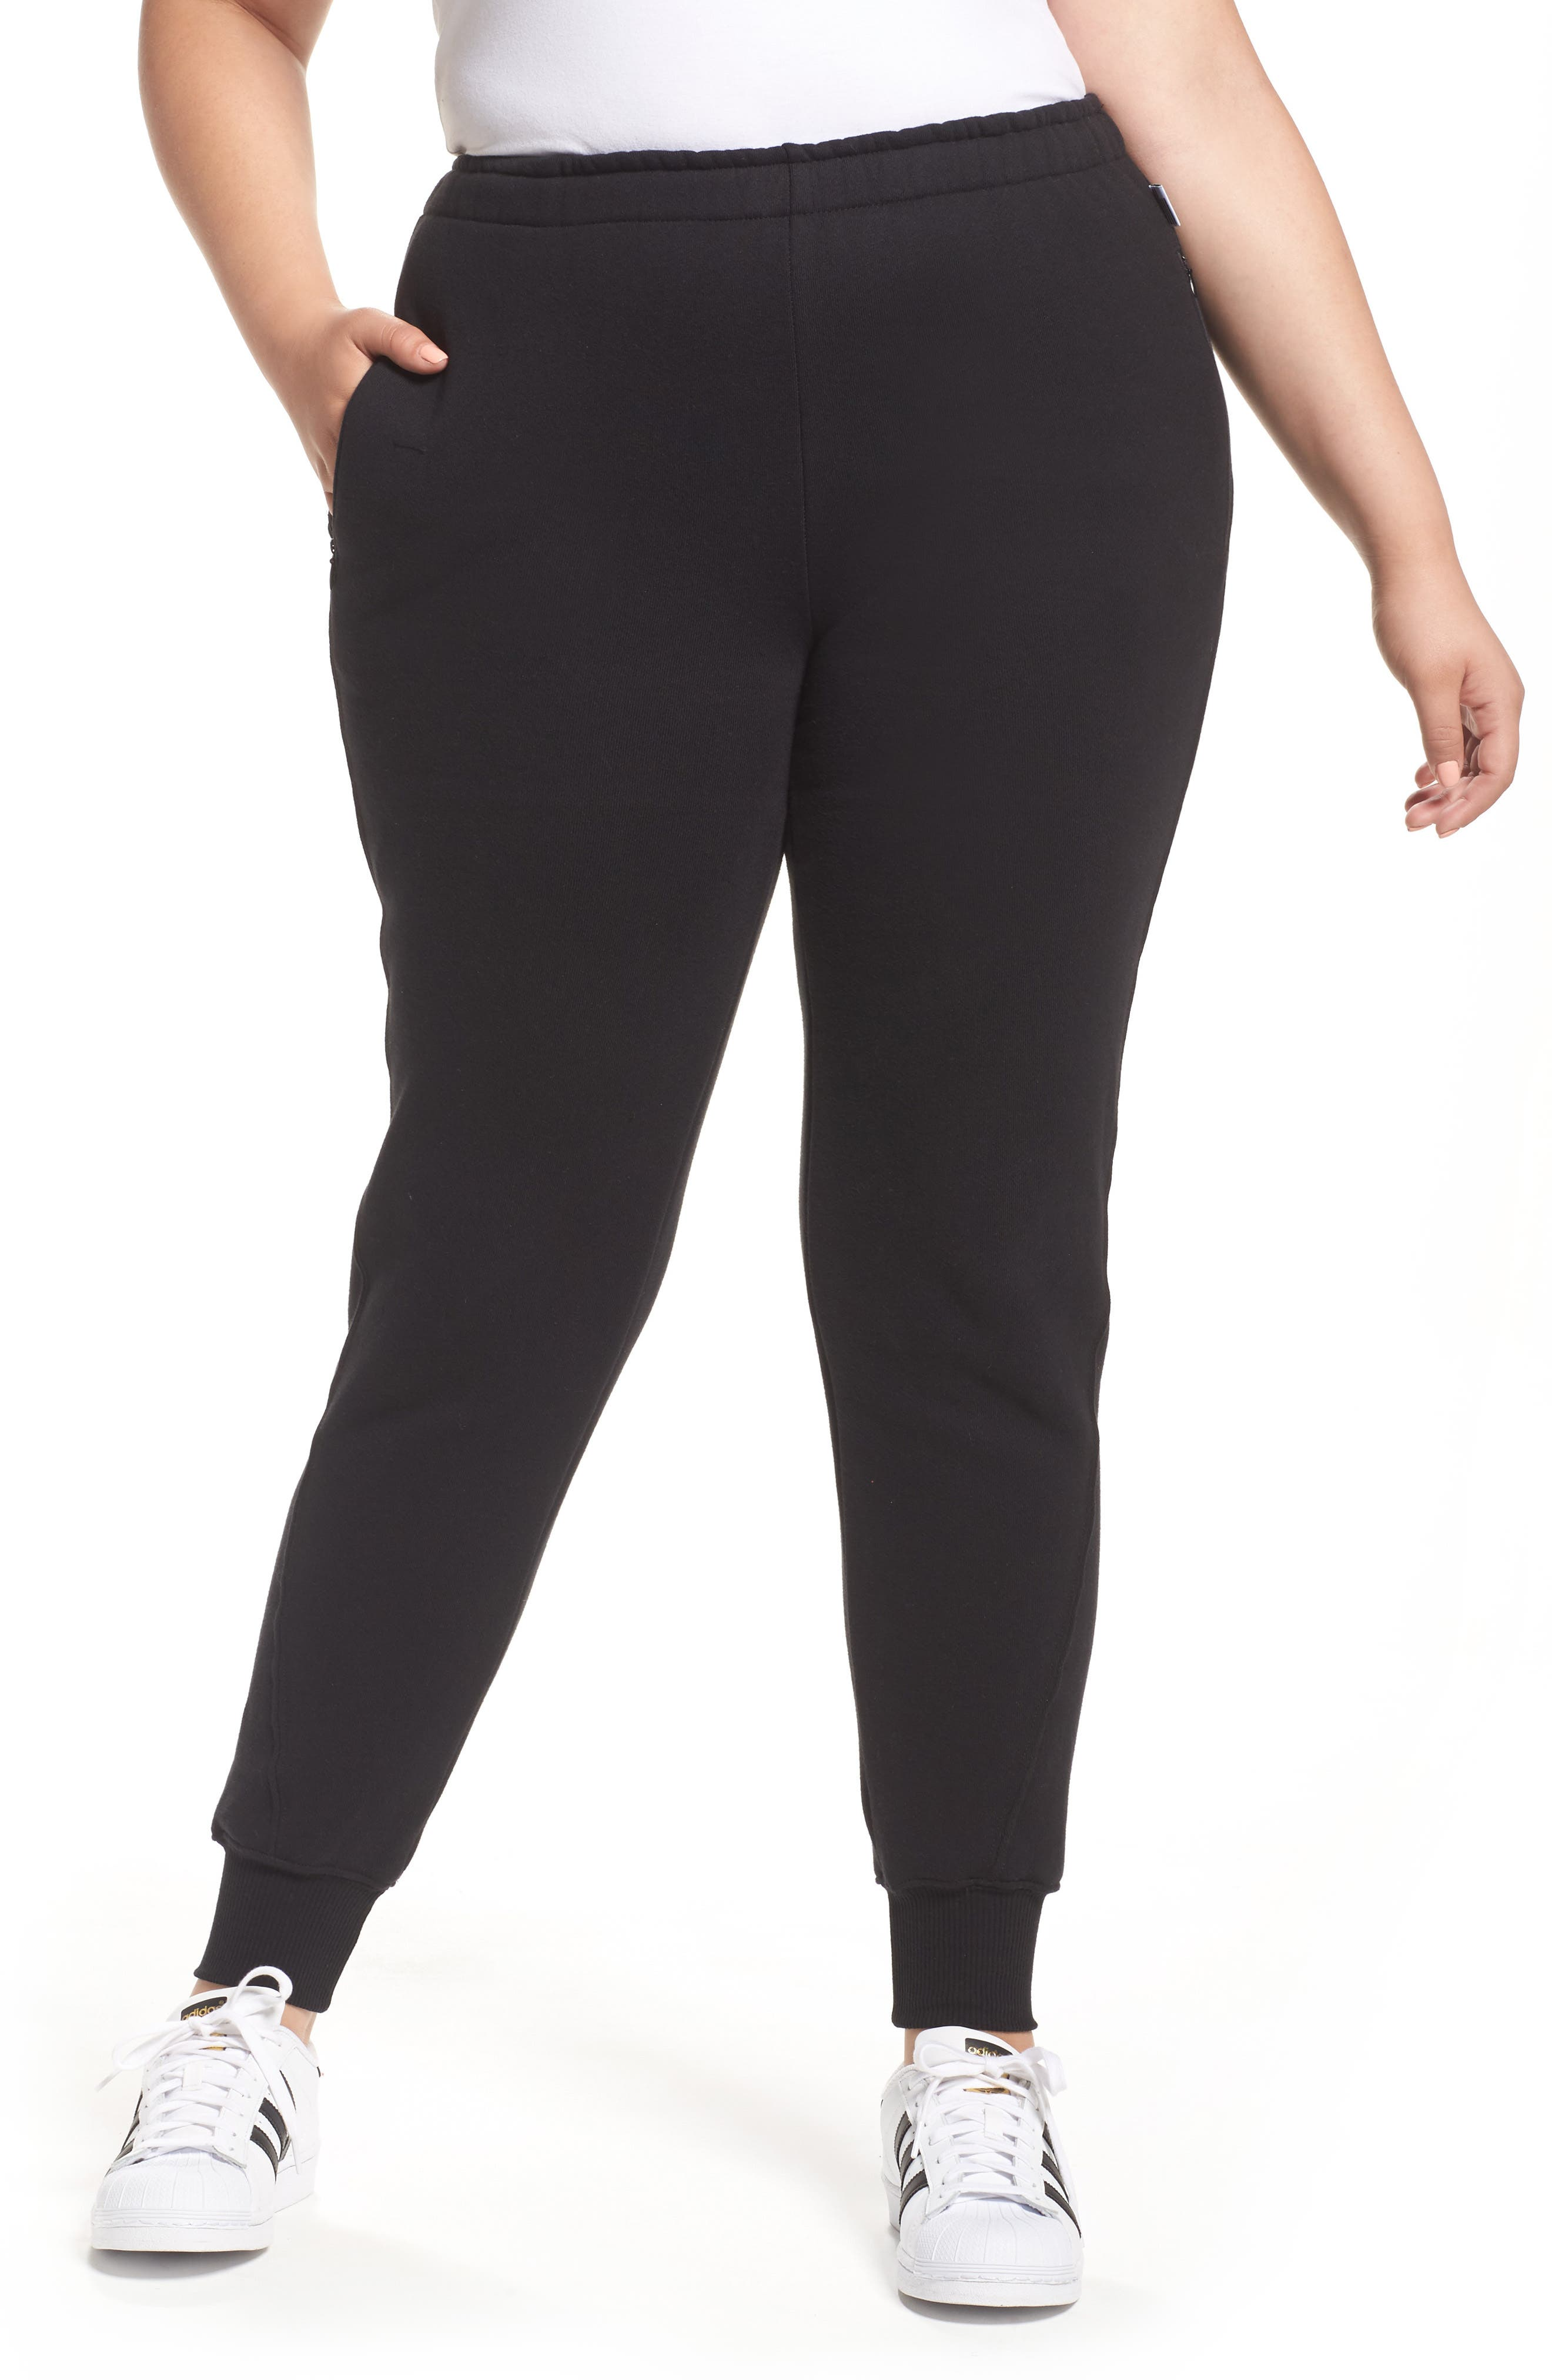 Good Sweats The Twisted Seam Pants,                         Main,                         color, 002